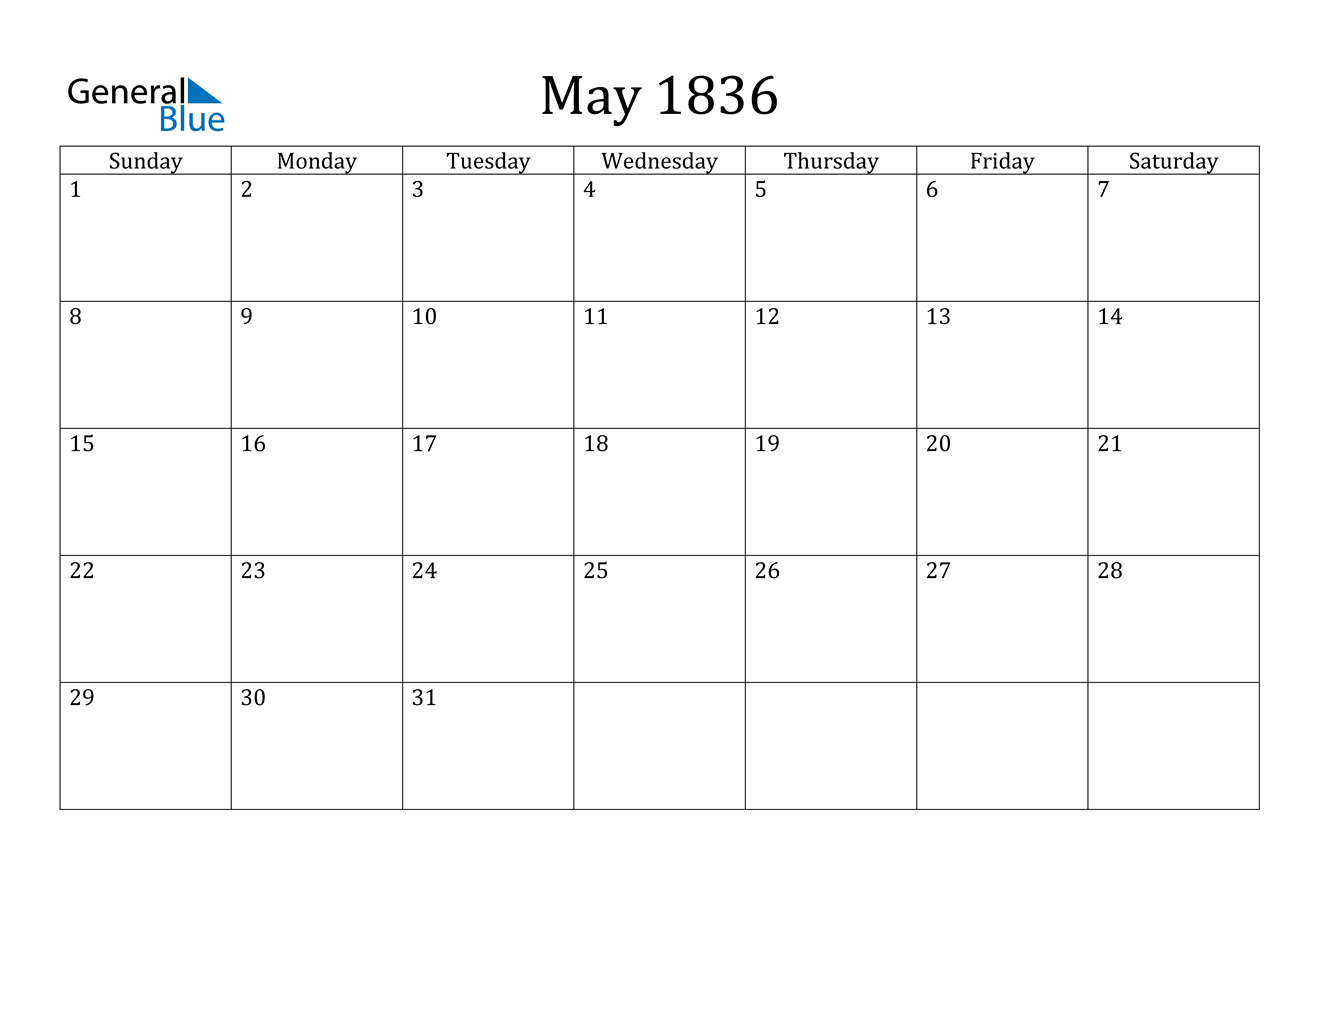 Image of May 1836 Calendar